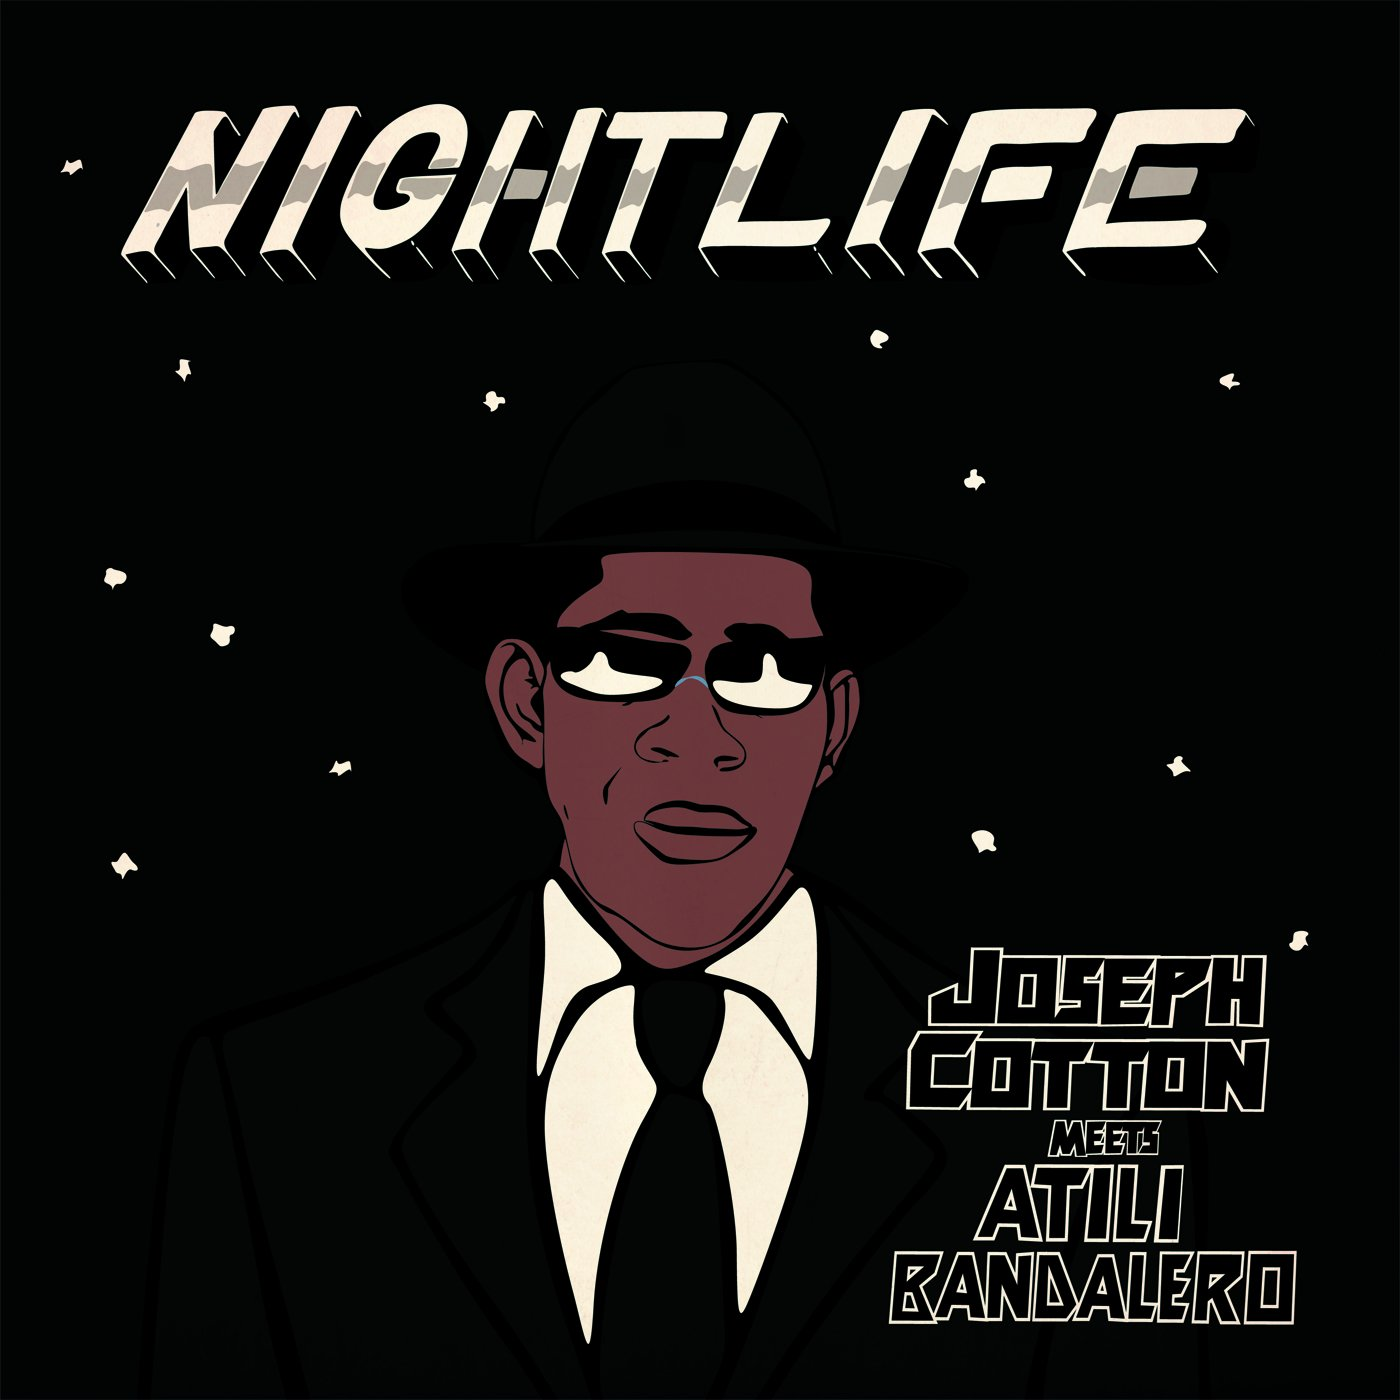 Vinilo : Joseph Cotton - Atili Bandalero - Nightlife (LP Vinyl)